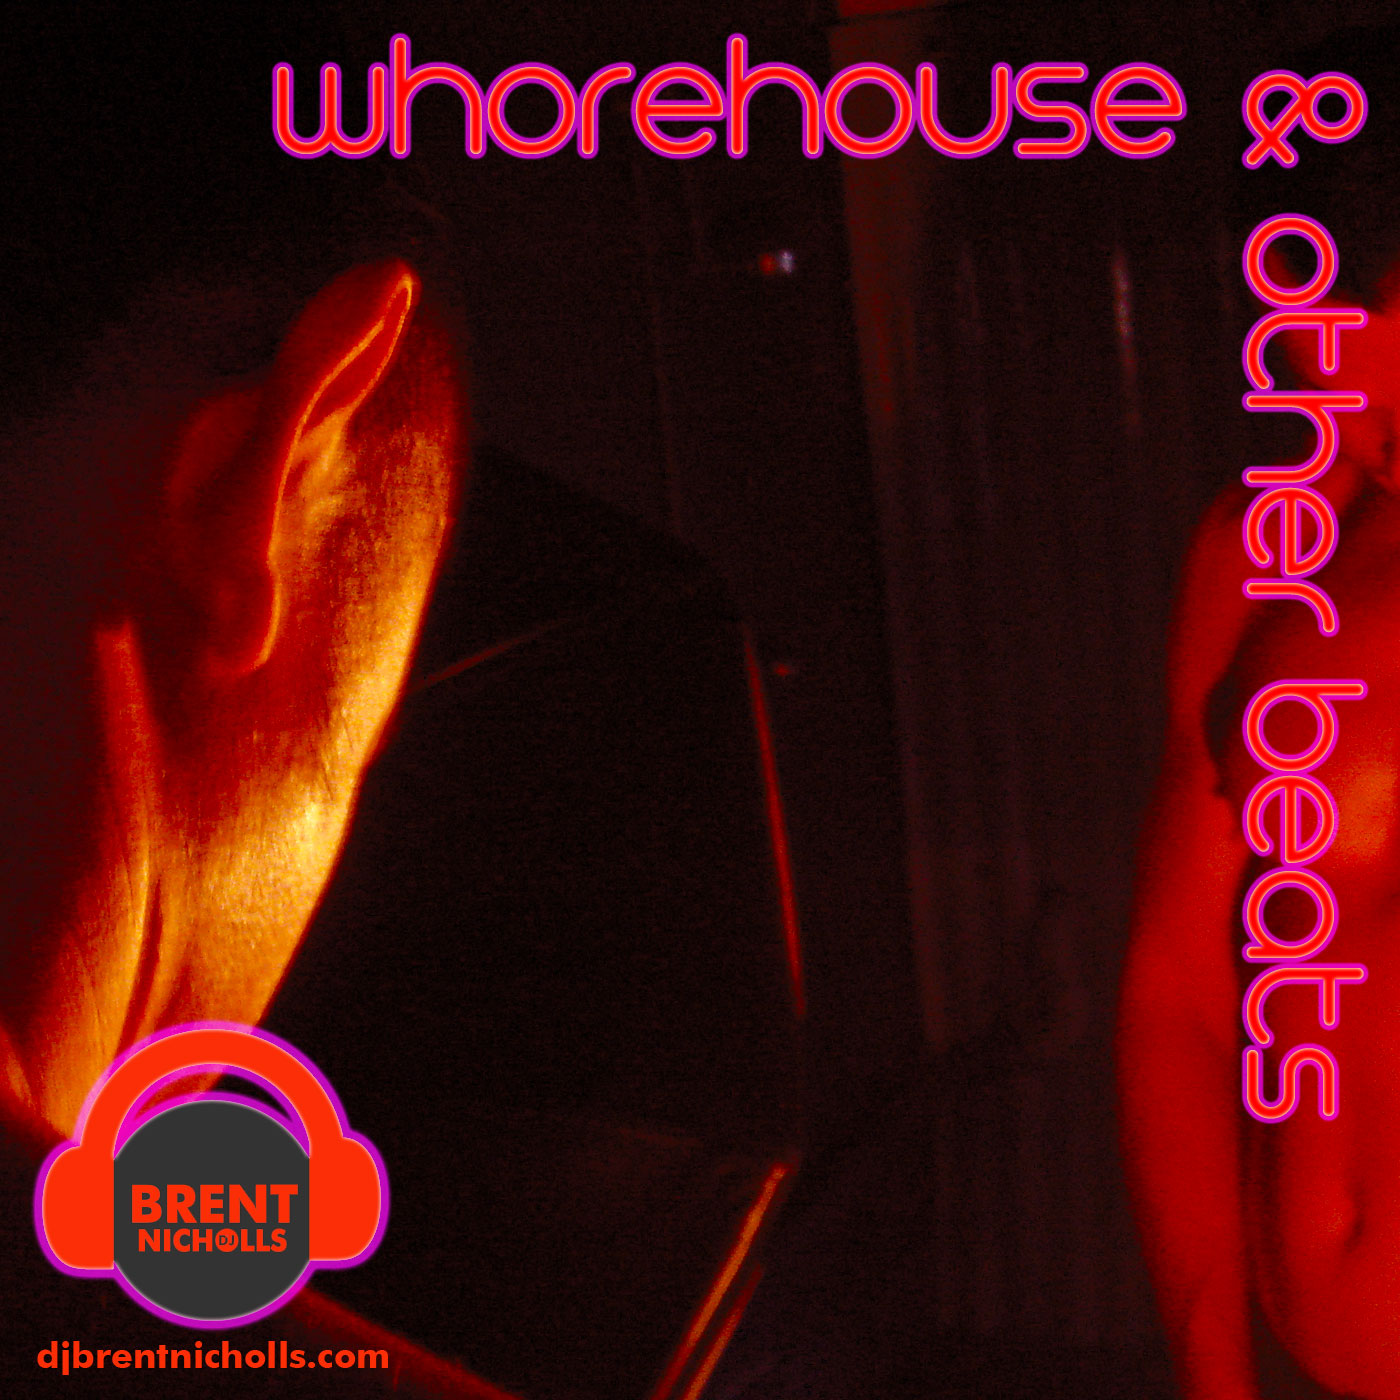 PODCAST: WHOREHOUSE & OTHER BEATS